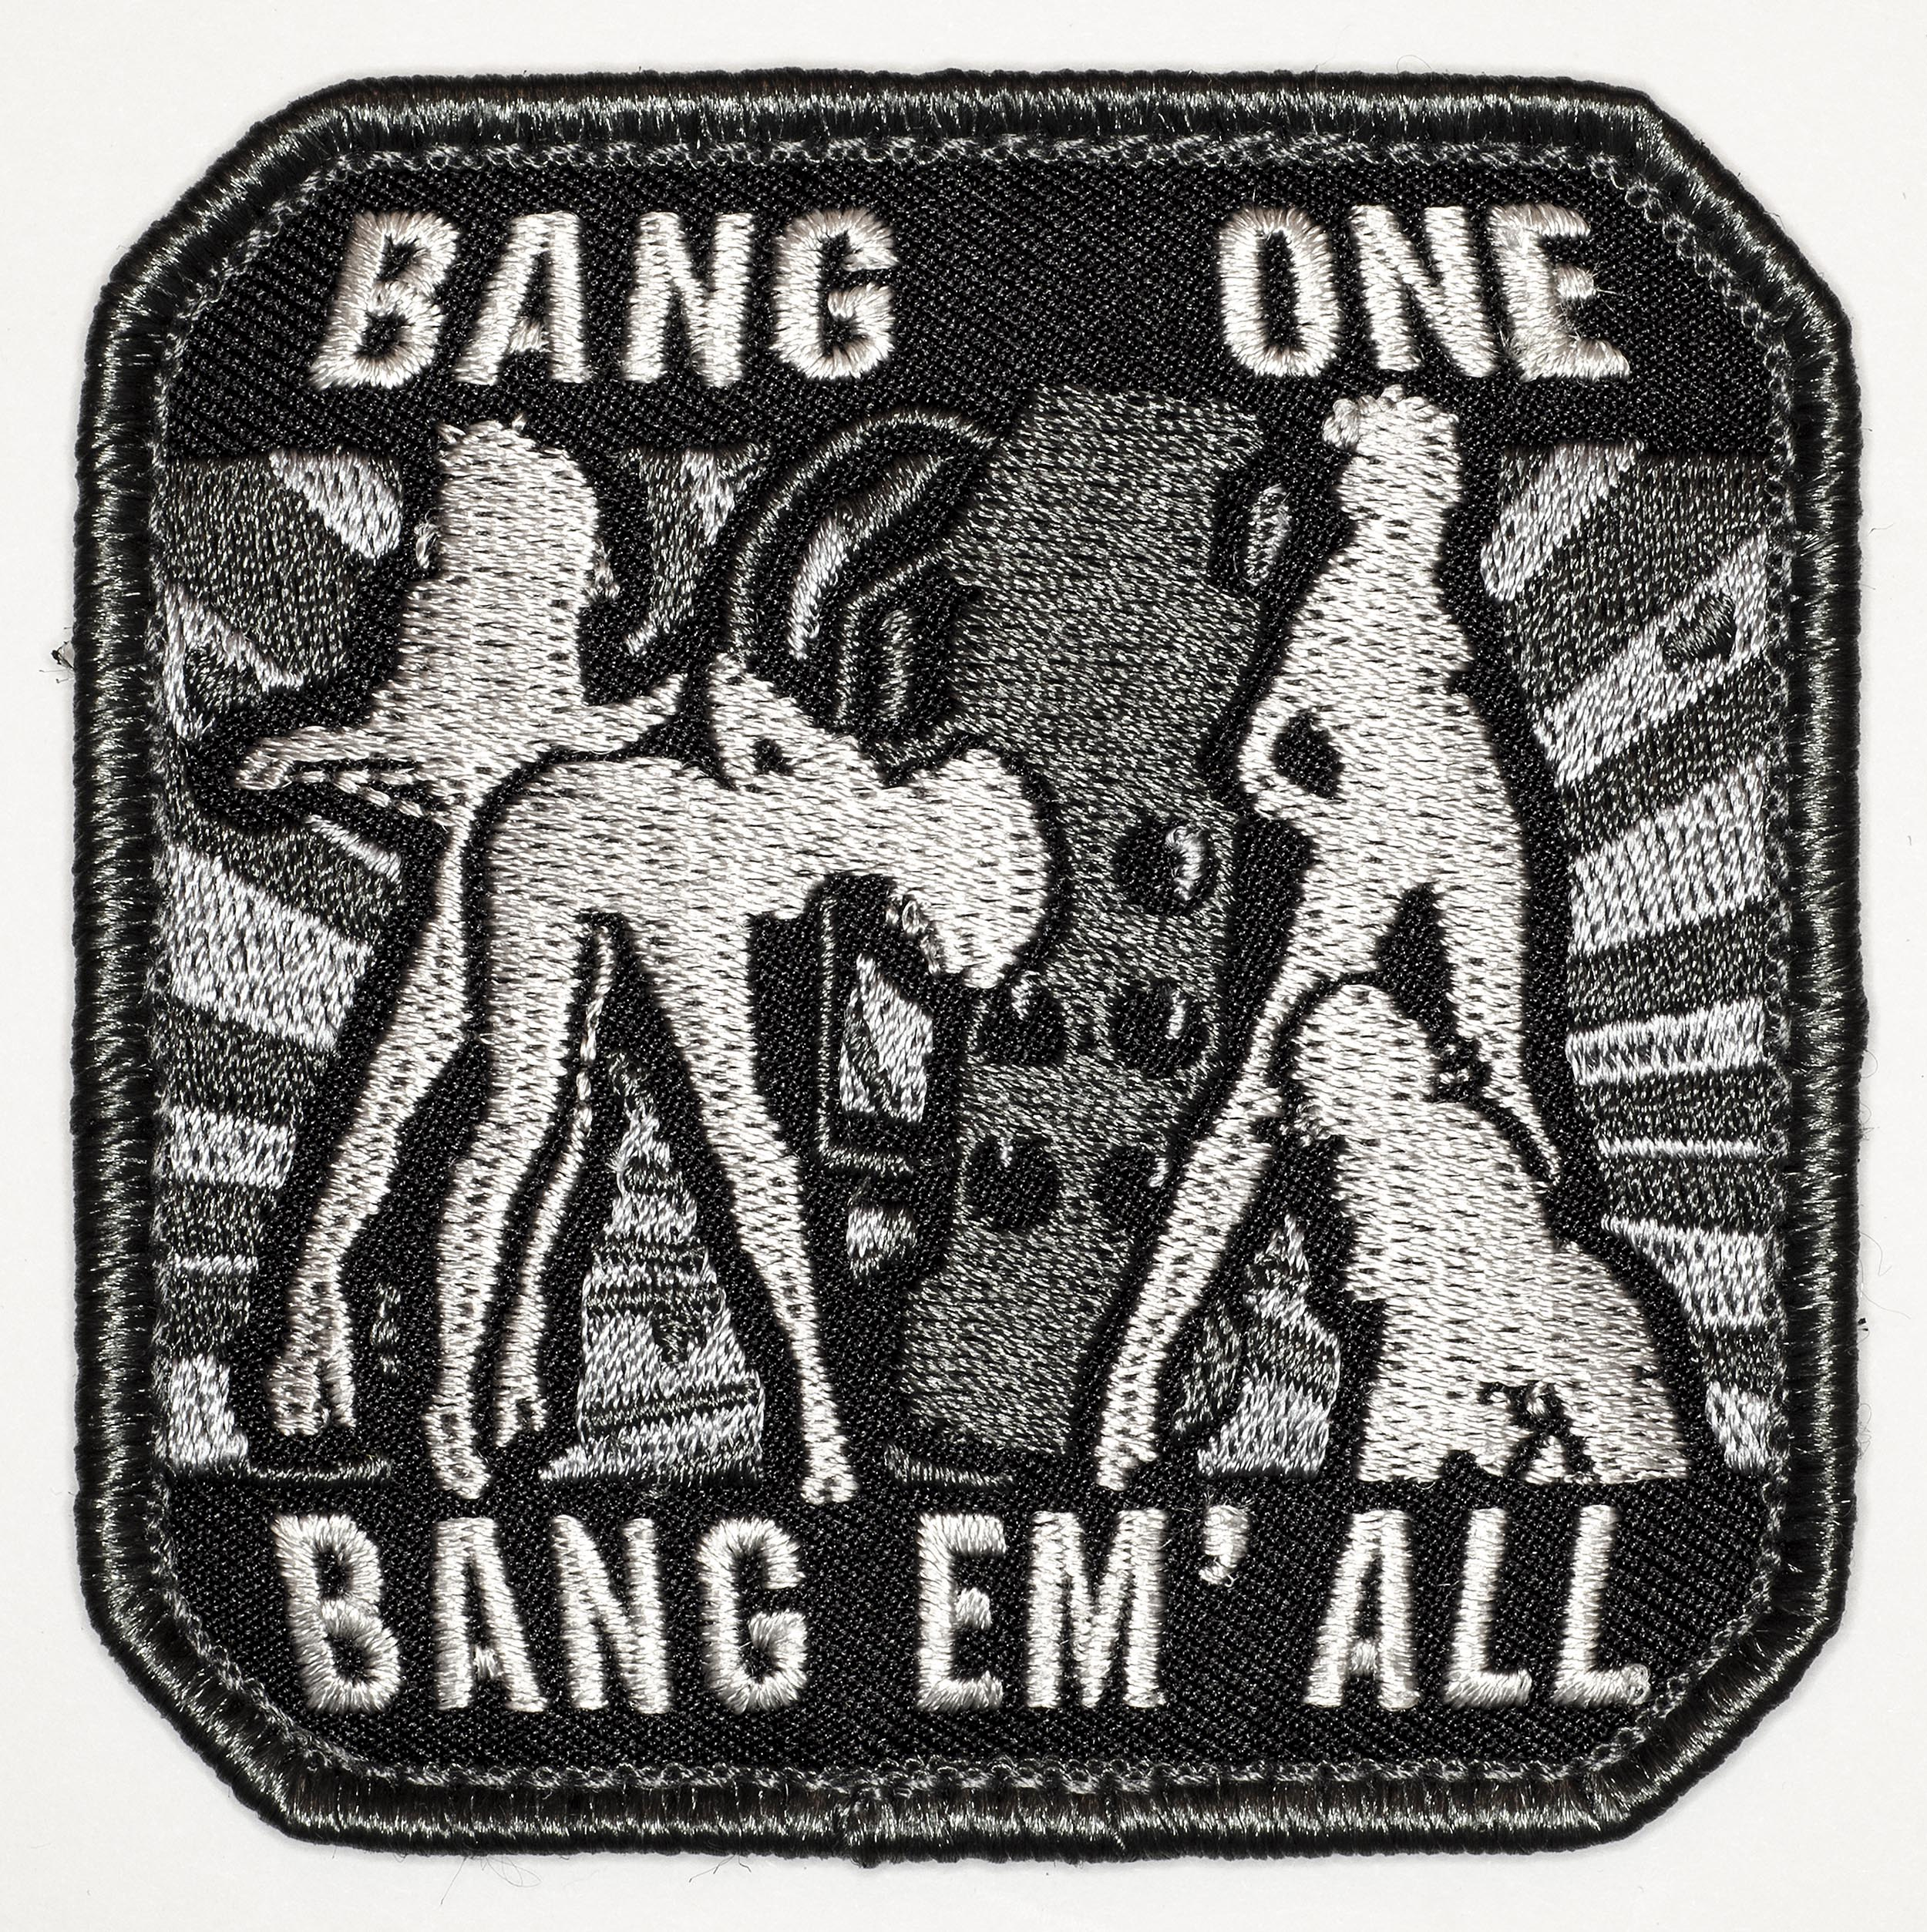 "Bang One, Bang Em' All, 2016, Archival Pigment Print, 24""x24"""